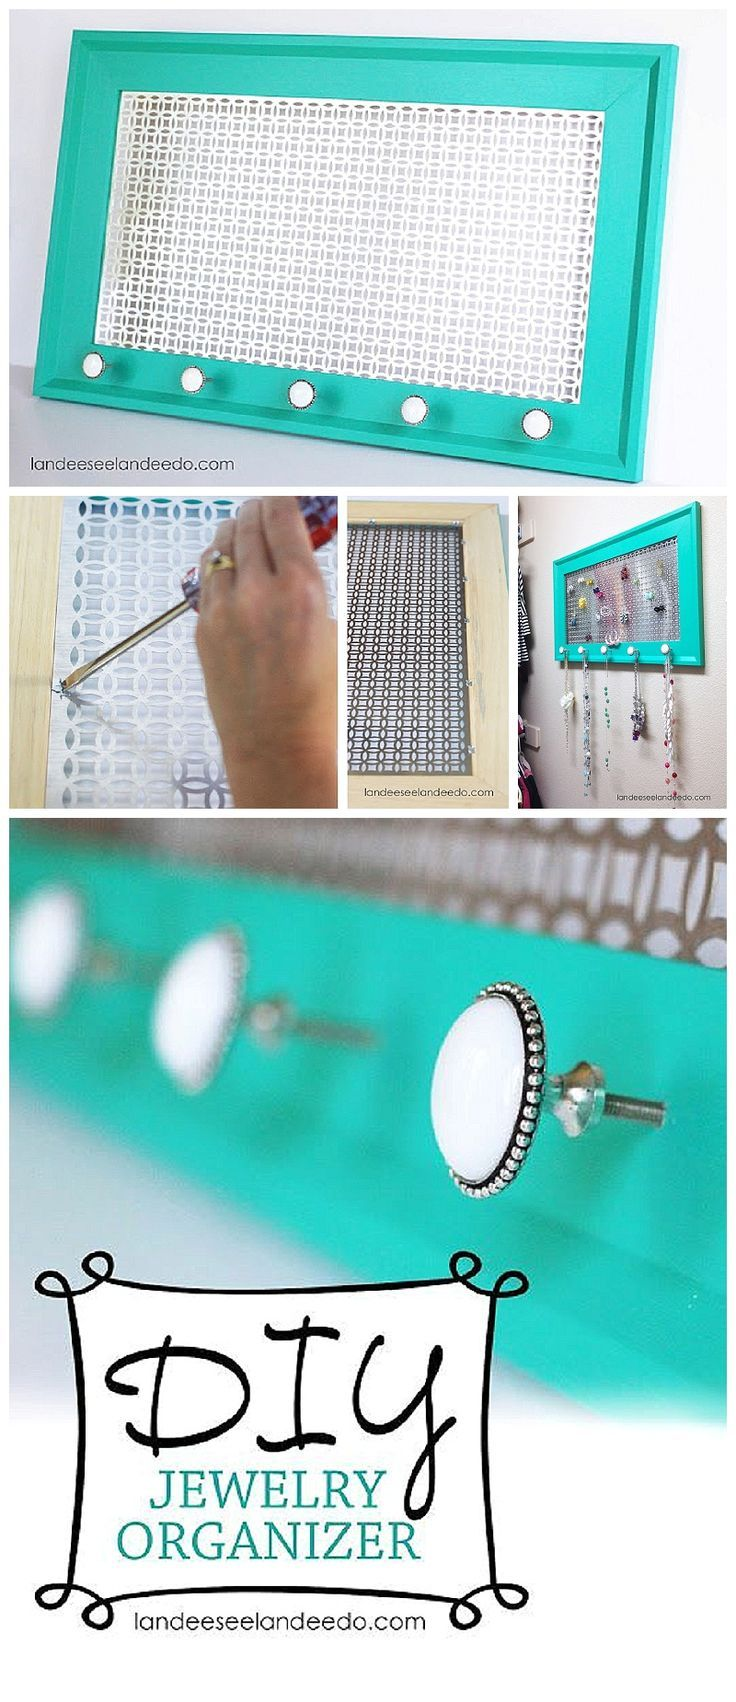 DIY Jewelry Organizer Diy jewelry organizer Tutorials and Craft